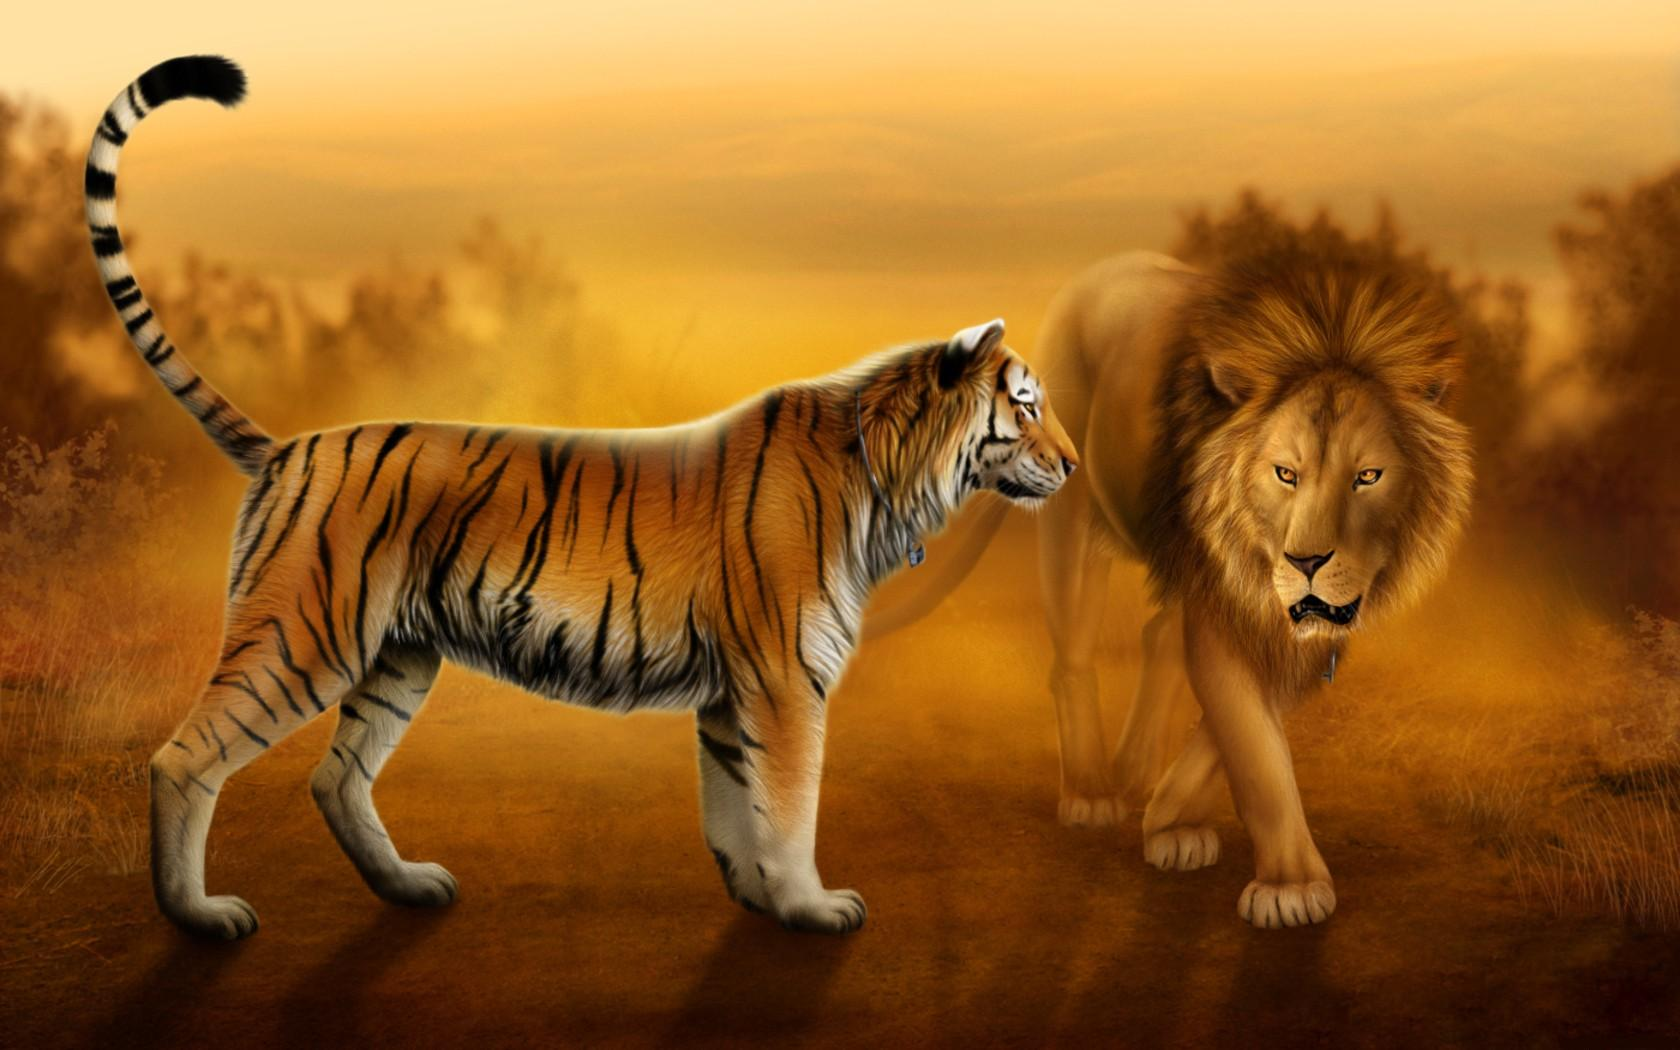 Pictures of lions tigers